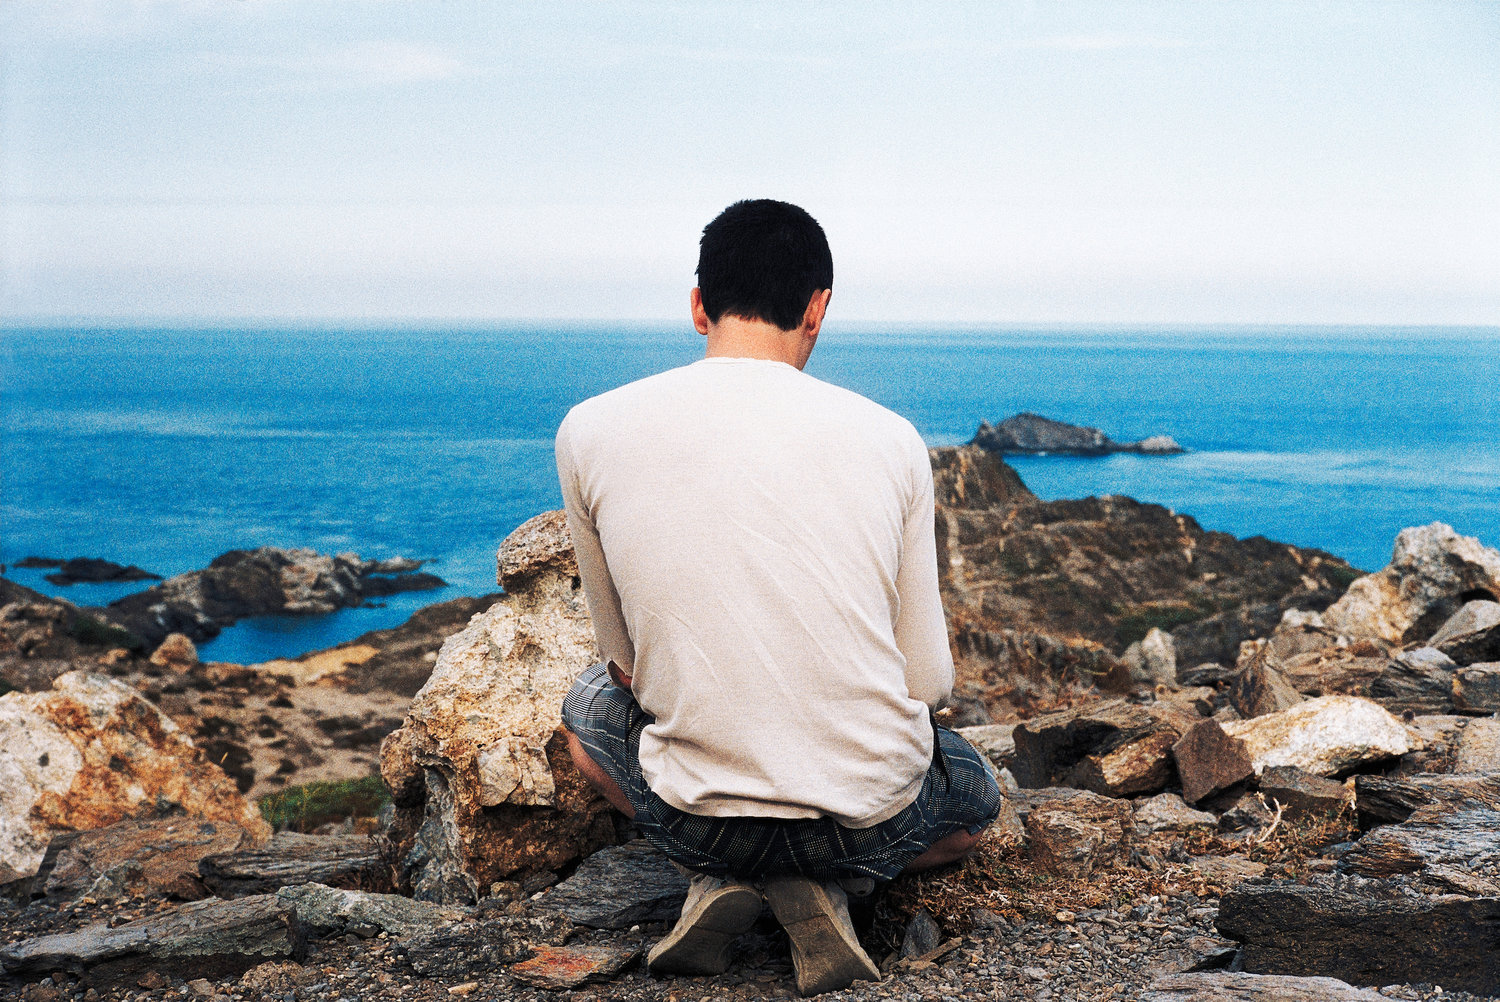 Adam and the Mediterranean Sea #1, Cap De Creus, 2009